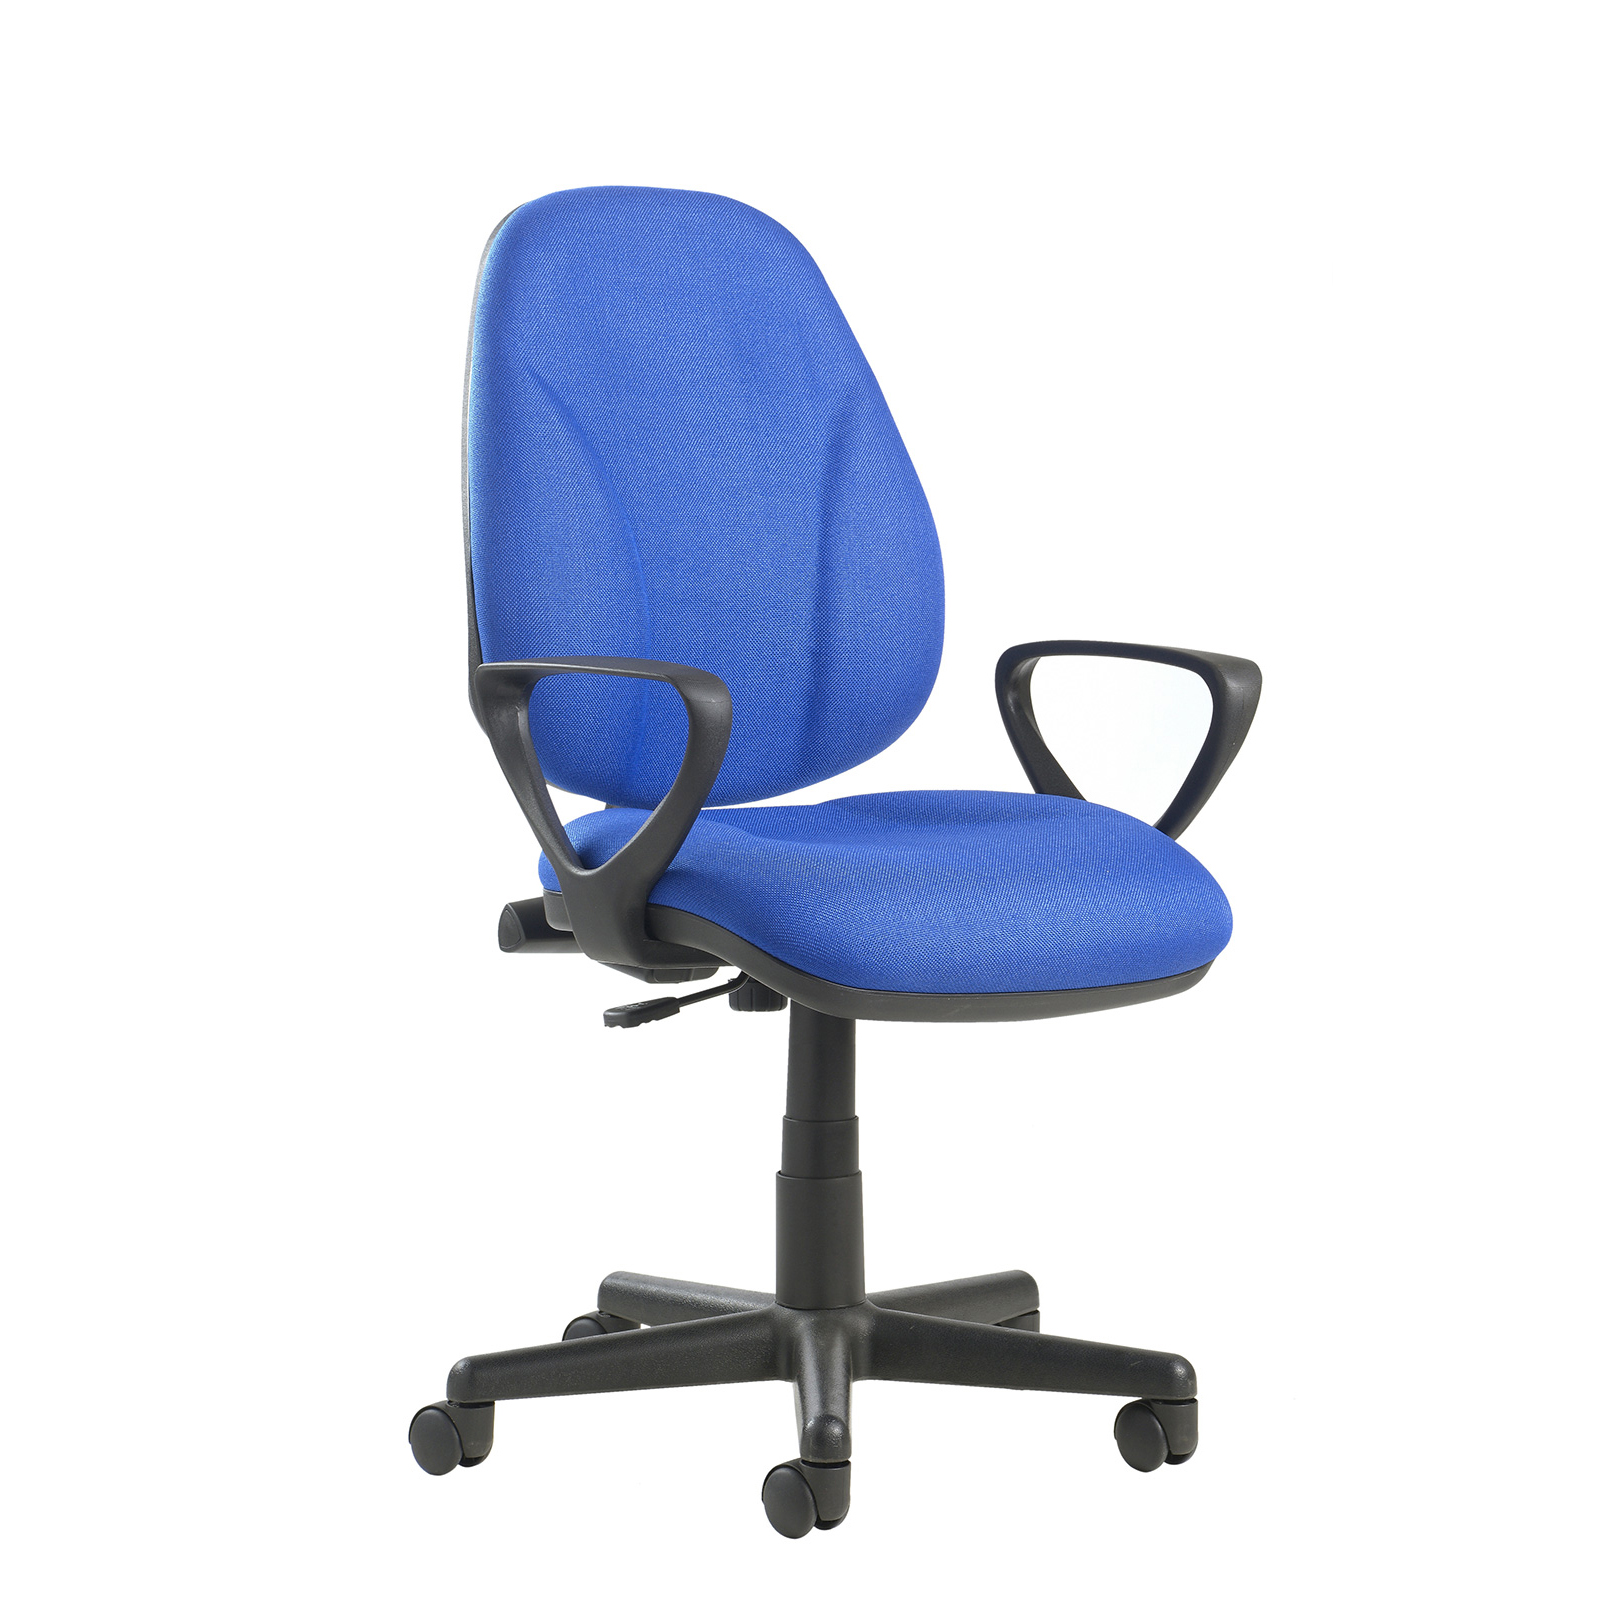 Desk Chairs Bilbao fabric operators chair with lumbar support